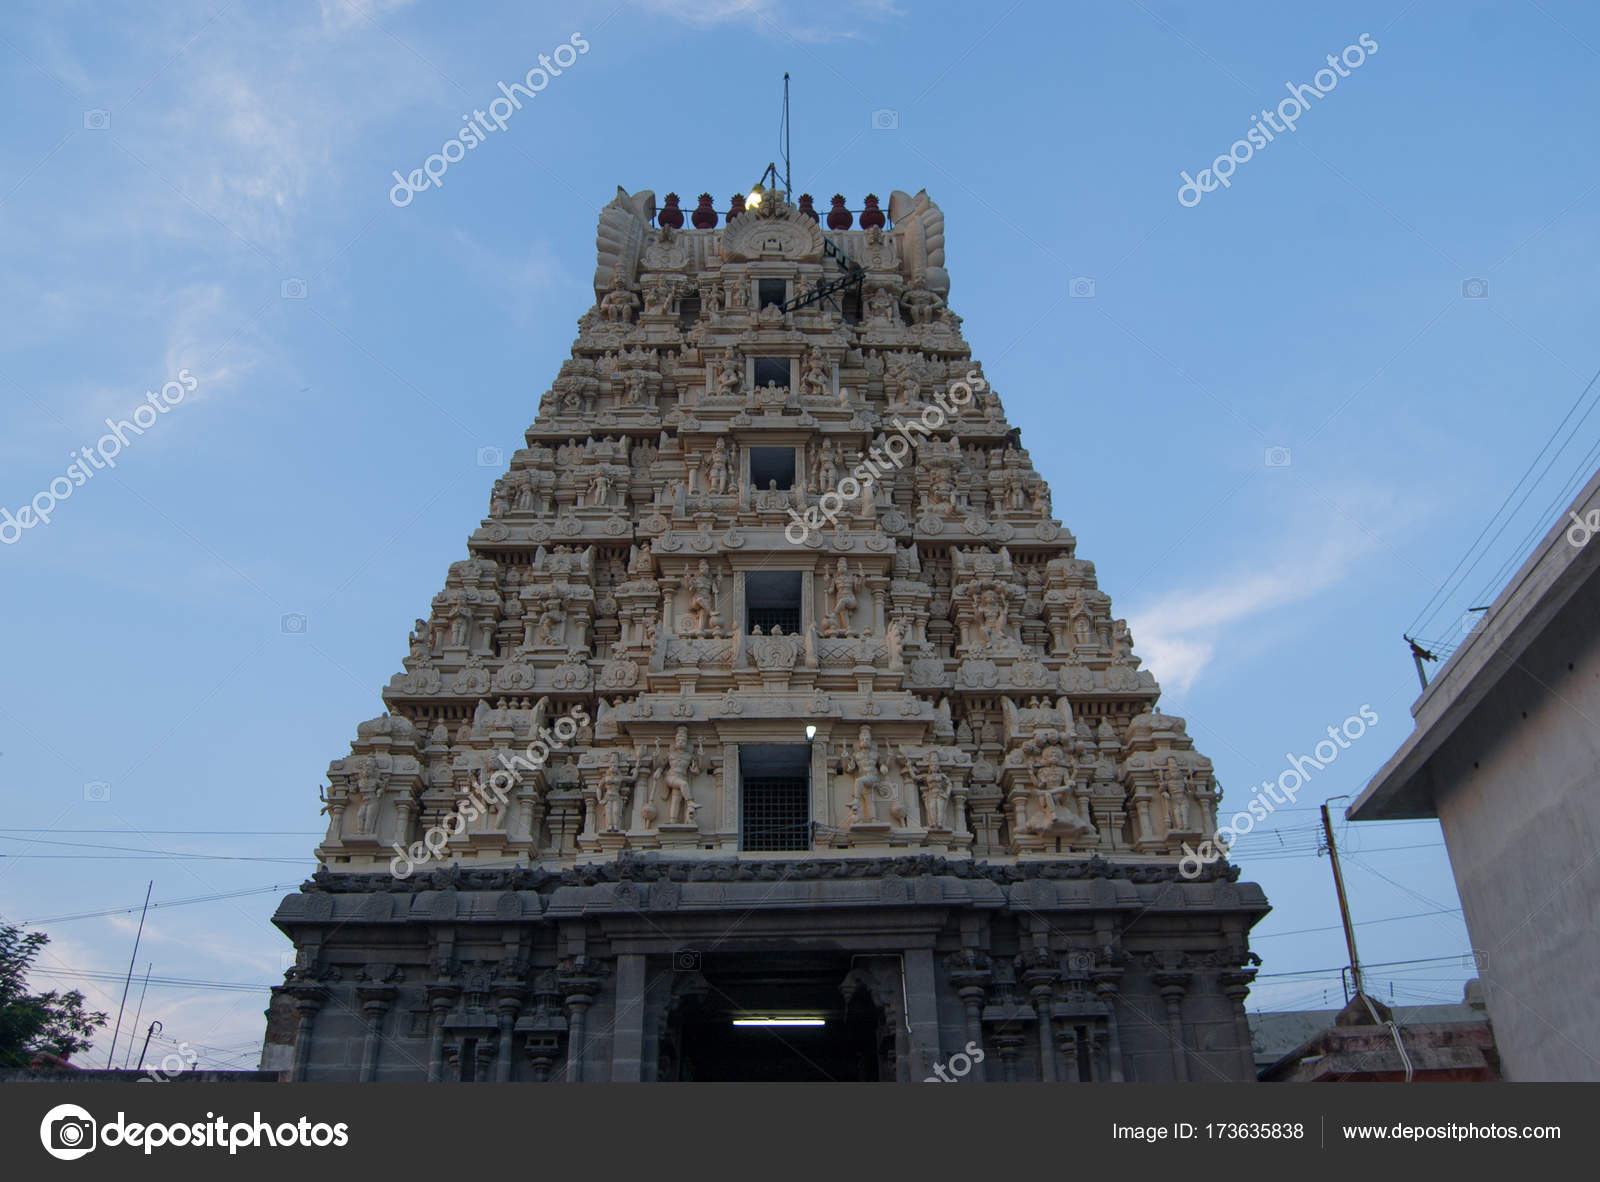 Ashtabujakaram is a Hindu temple in Kanchi  Located in the